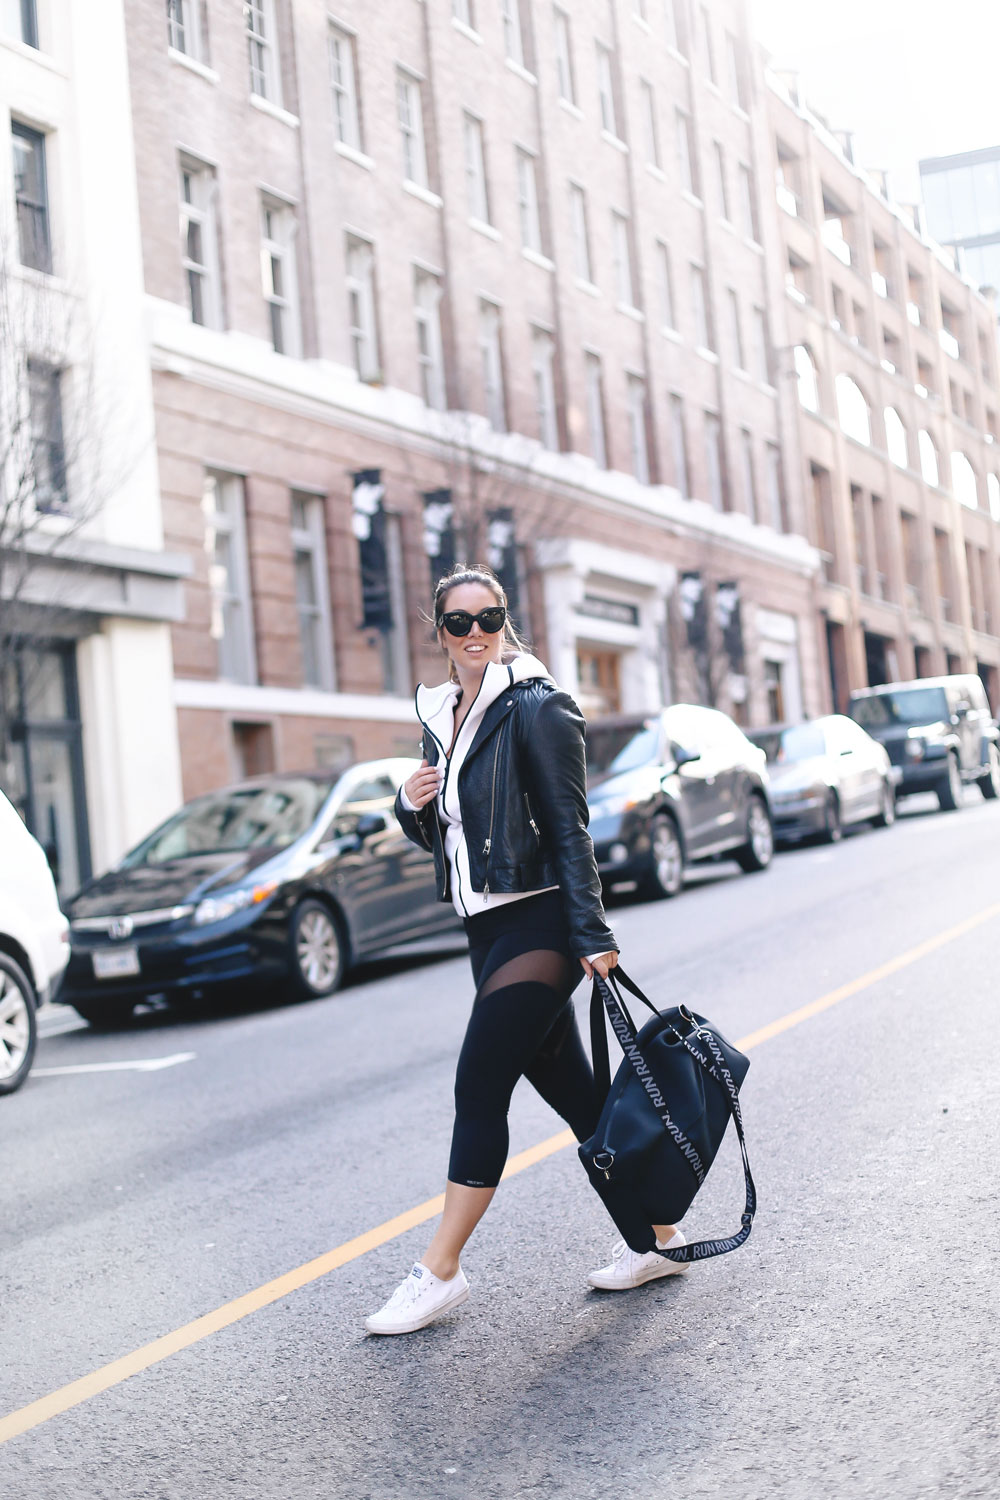 Cute workout outfit ideas in Public Myth leggings, Adidas hoodie, Mackage jacket, Converse, New Balance sneakers styled by To Vogue or Bust